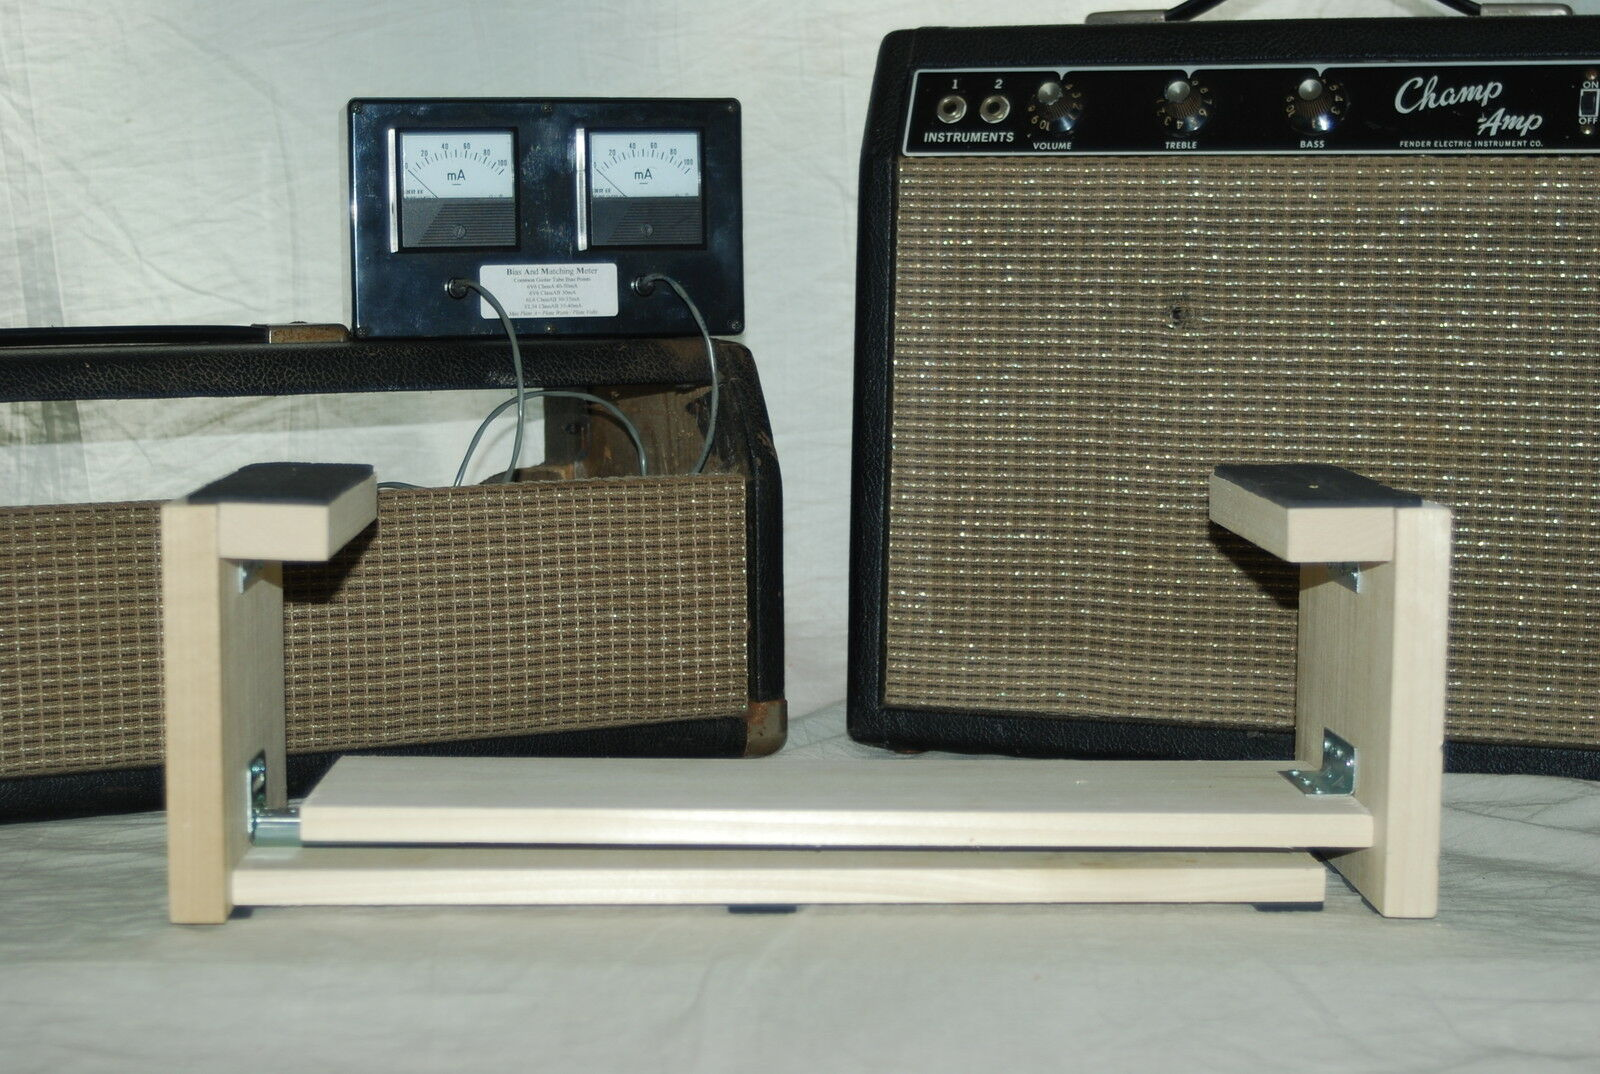 Tube Amp Chassis Cradle Adjustable for Fender or Marshall Amp Repair